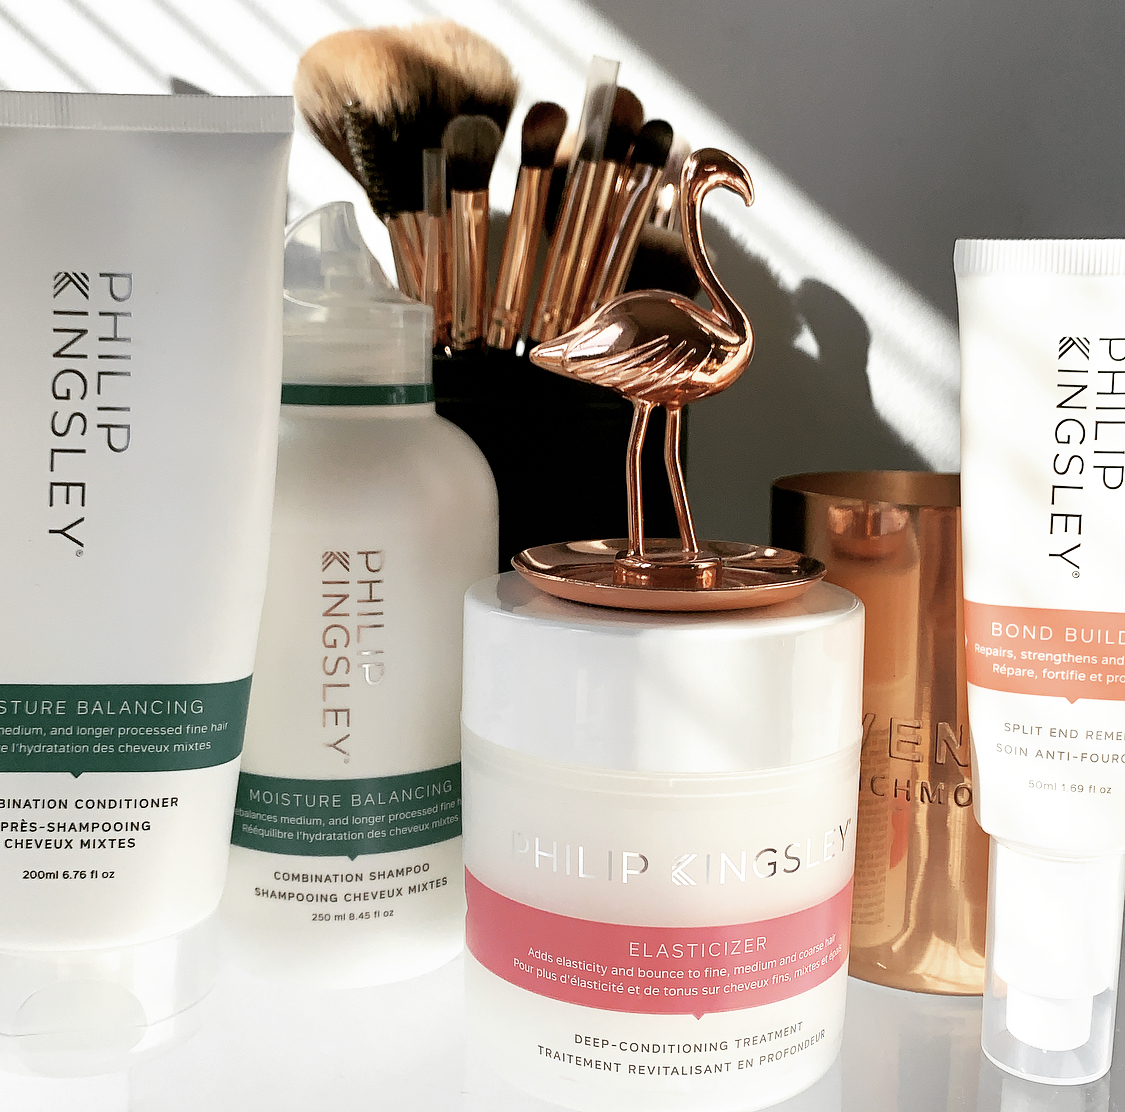 An incite into Philip Kingsley as a brand and the products I have been using to mend by dry split ends.